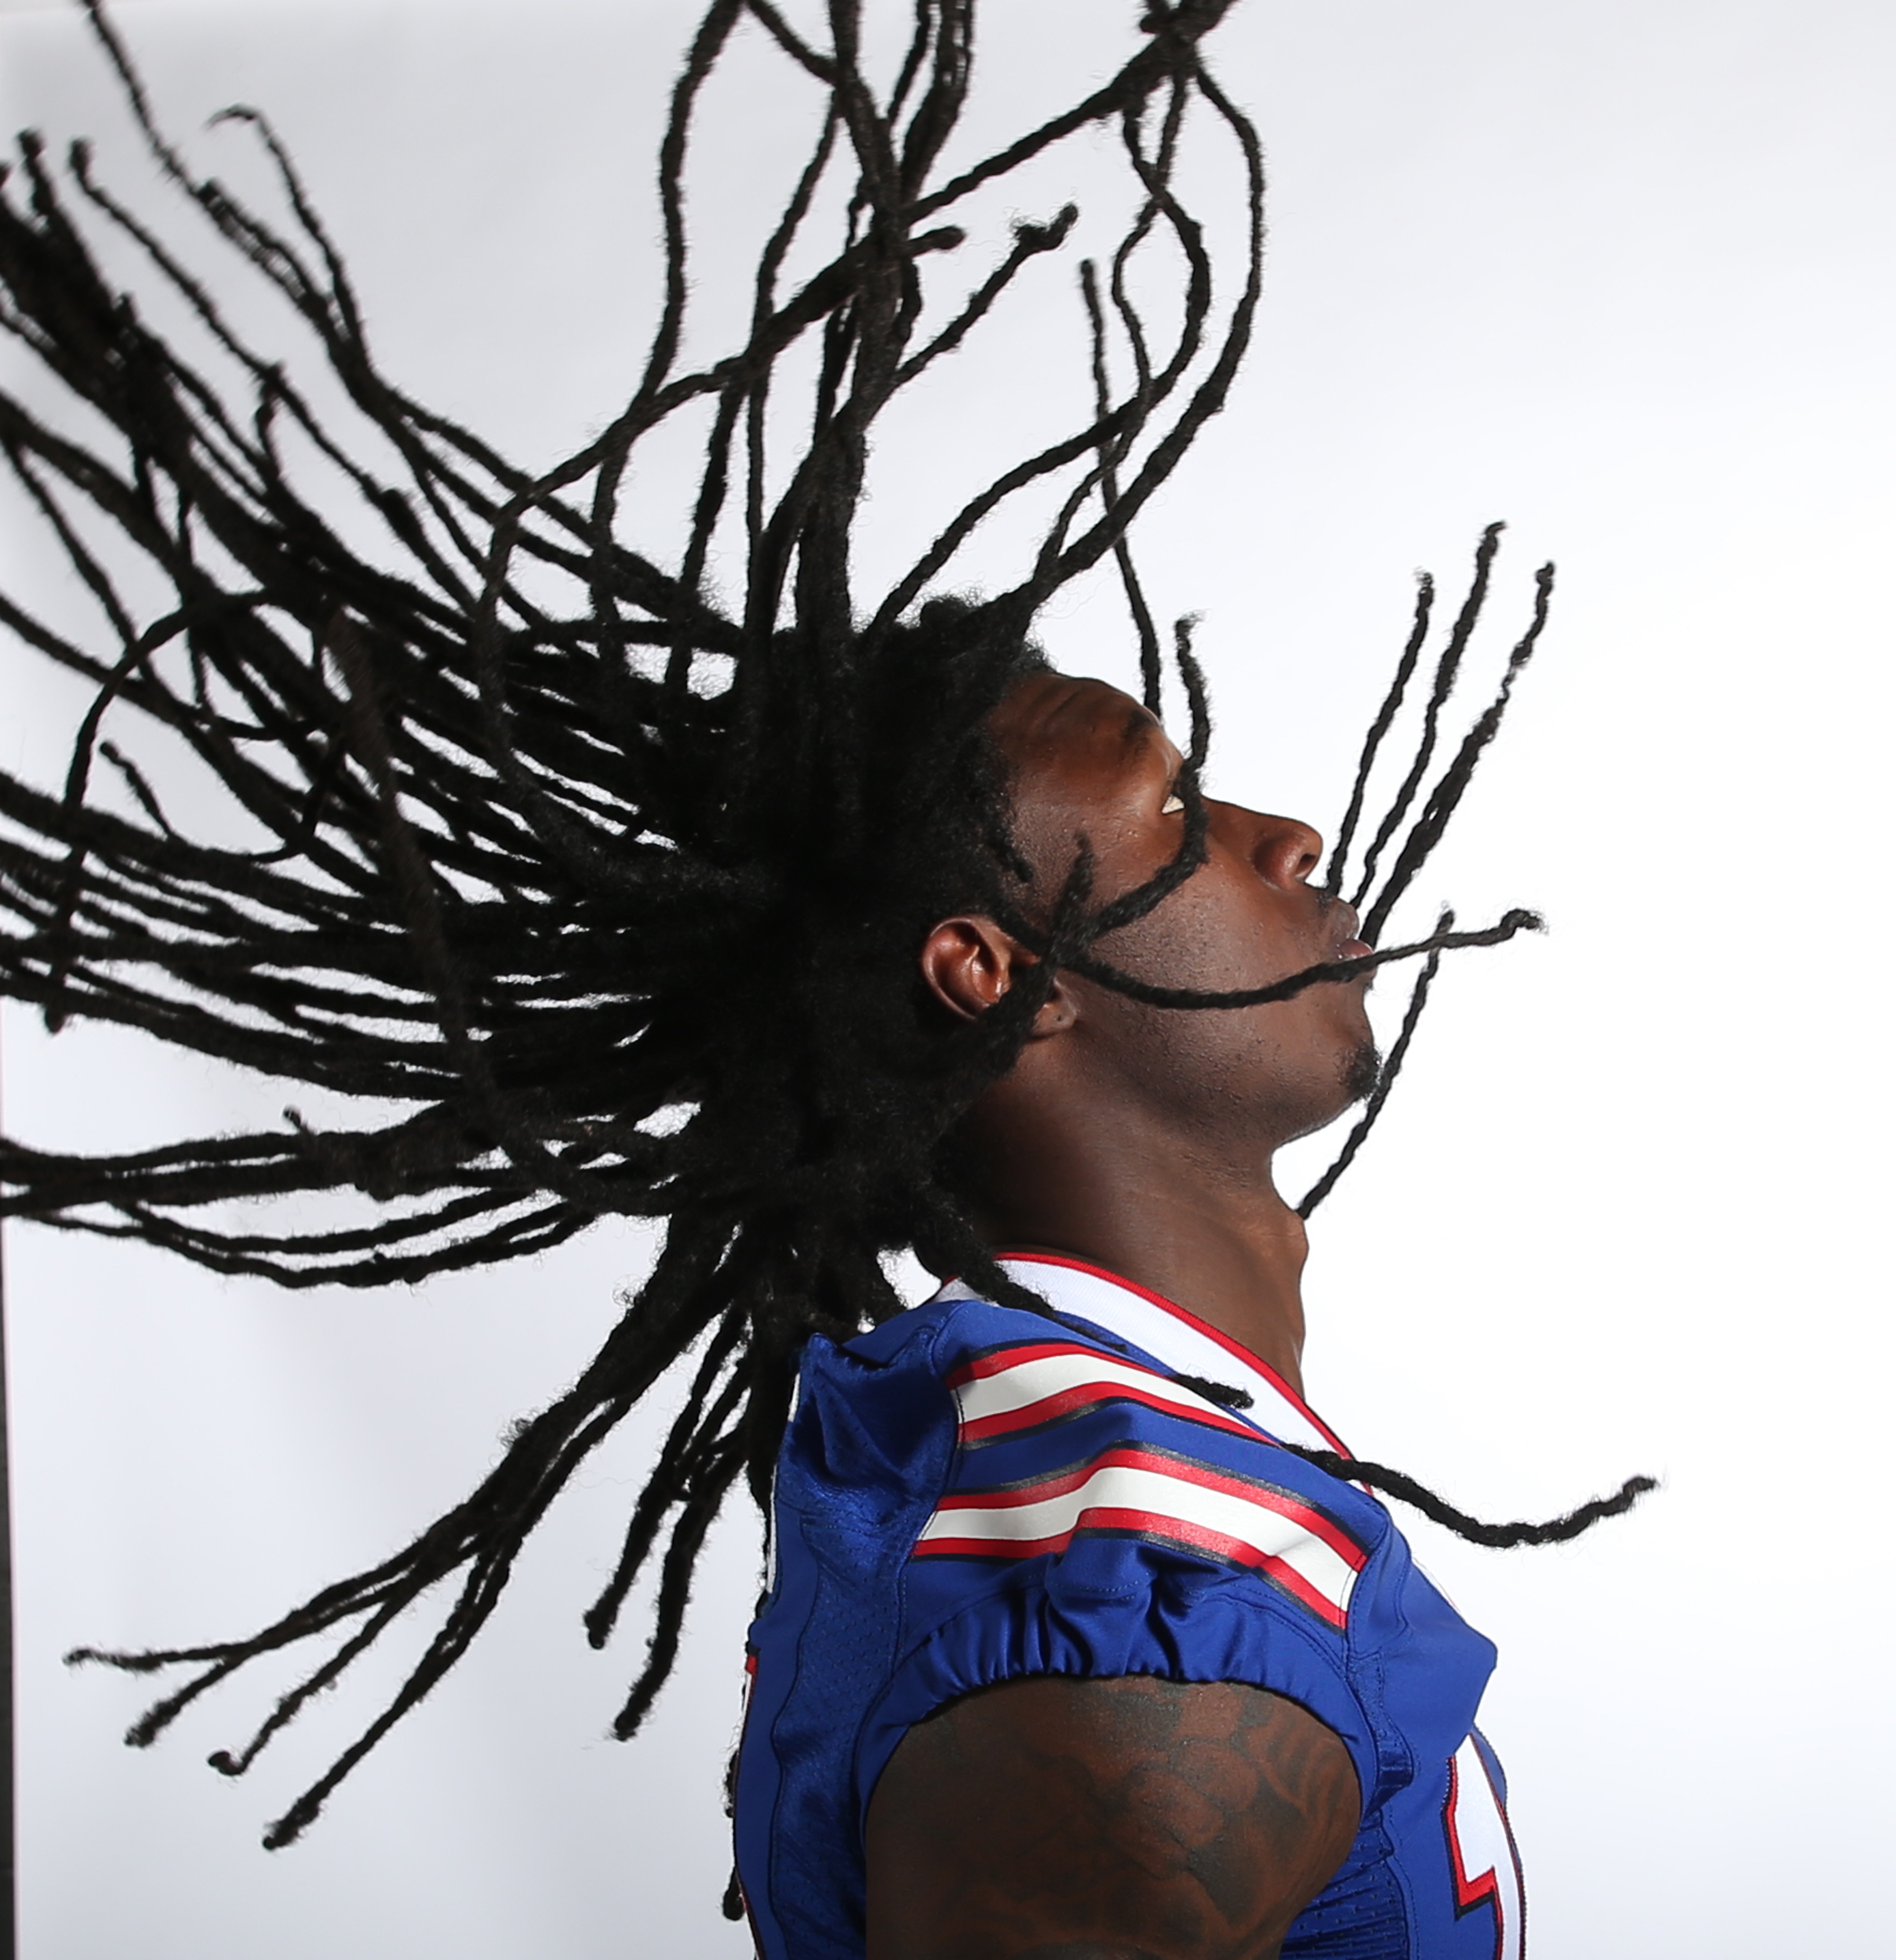 Buffalo Bills wide receiver Sammy Watkins portrait for pre view section. Photo taken at ADPRO Sports Training Center in Orchard Park,NY on Tuesday, Aug. 30, 2016.  (James P. McCoy/ Buffalo News)